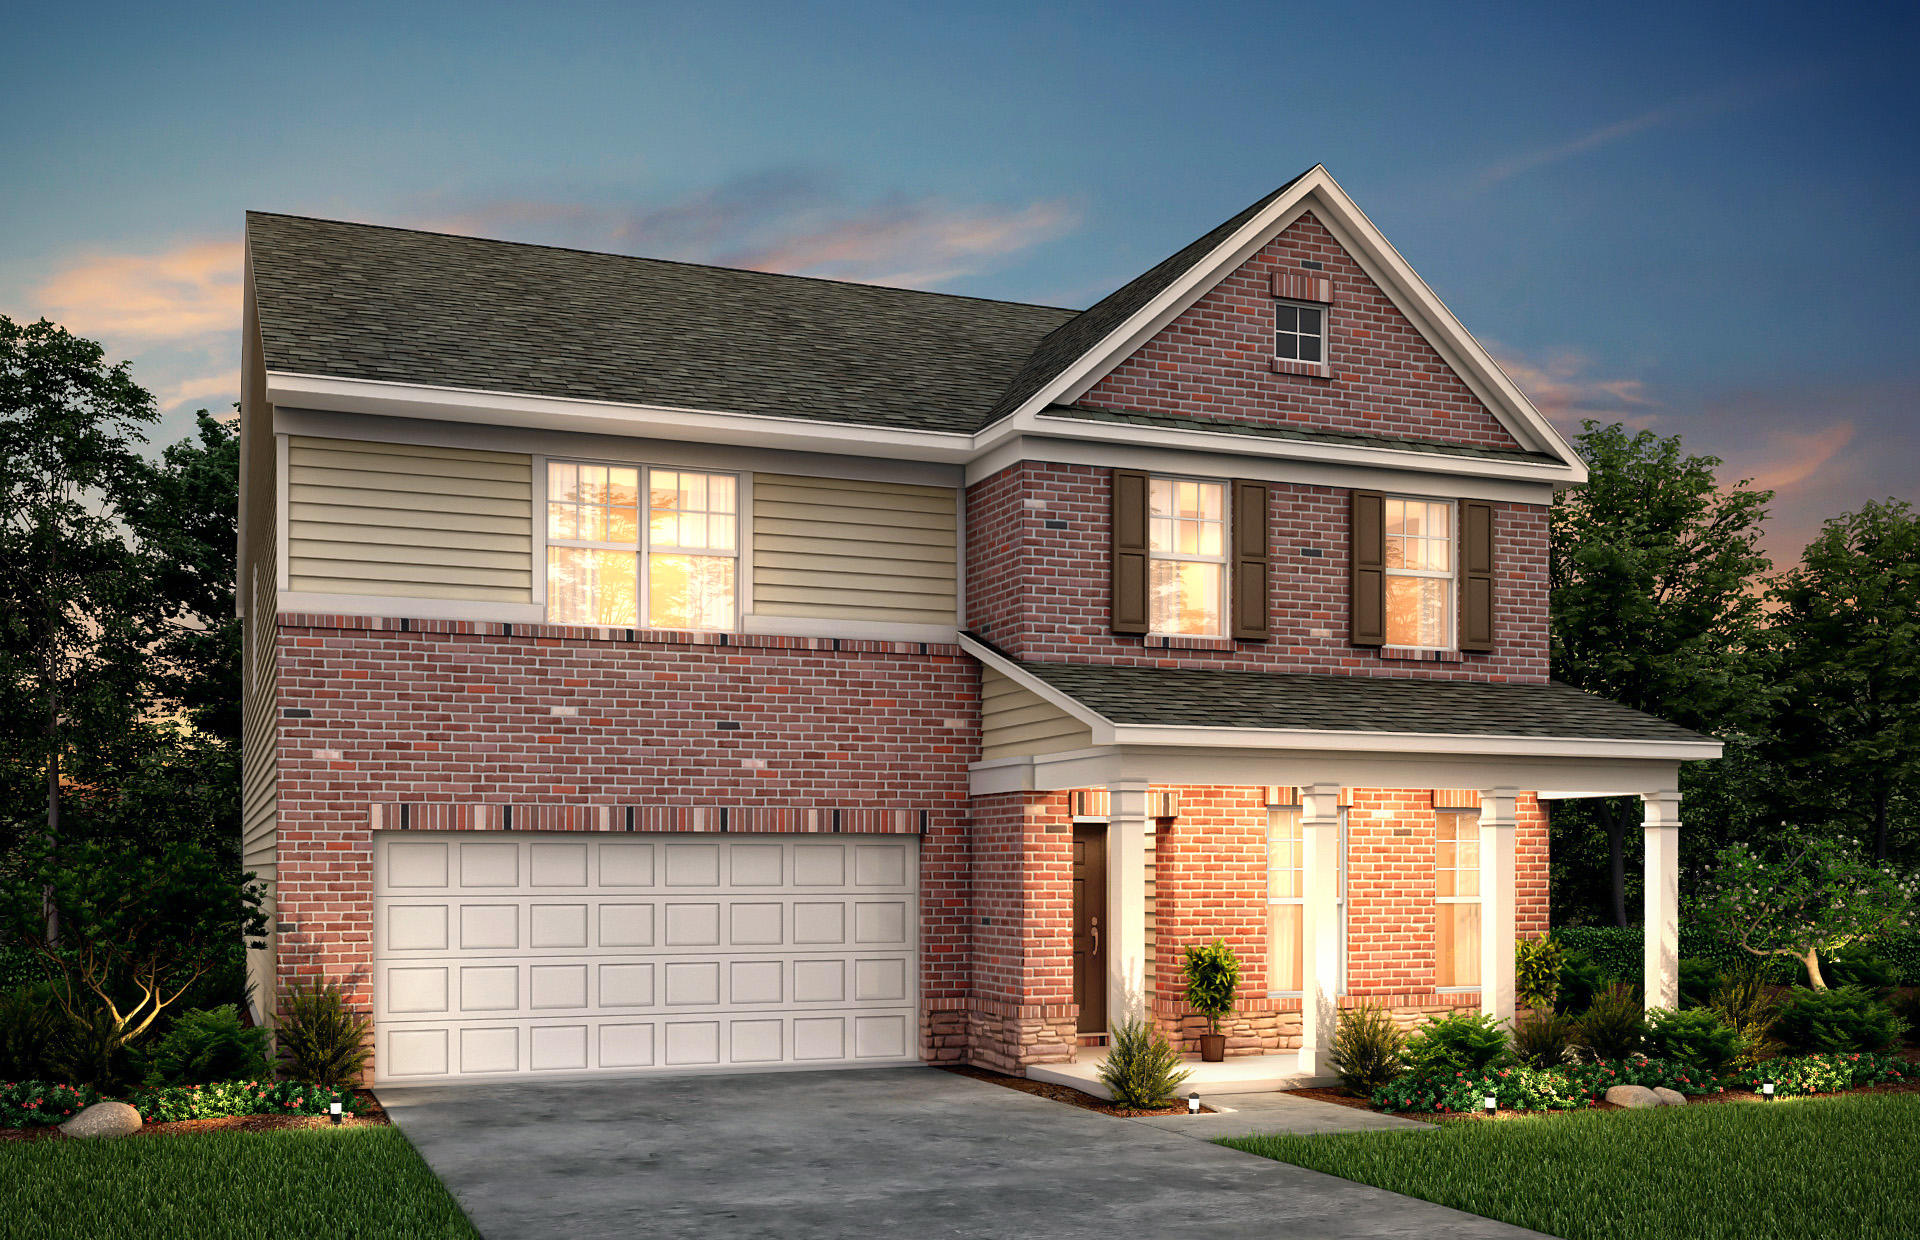 North Cove by Pulte Homes image 4